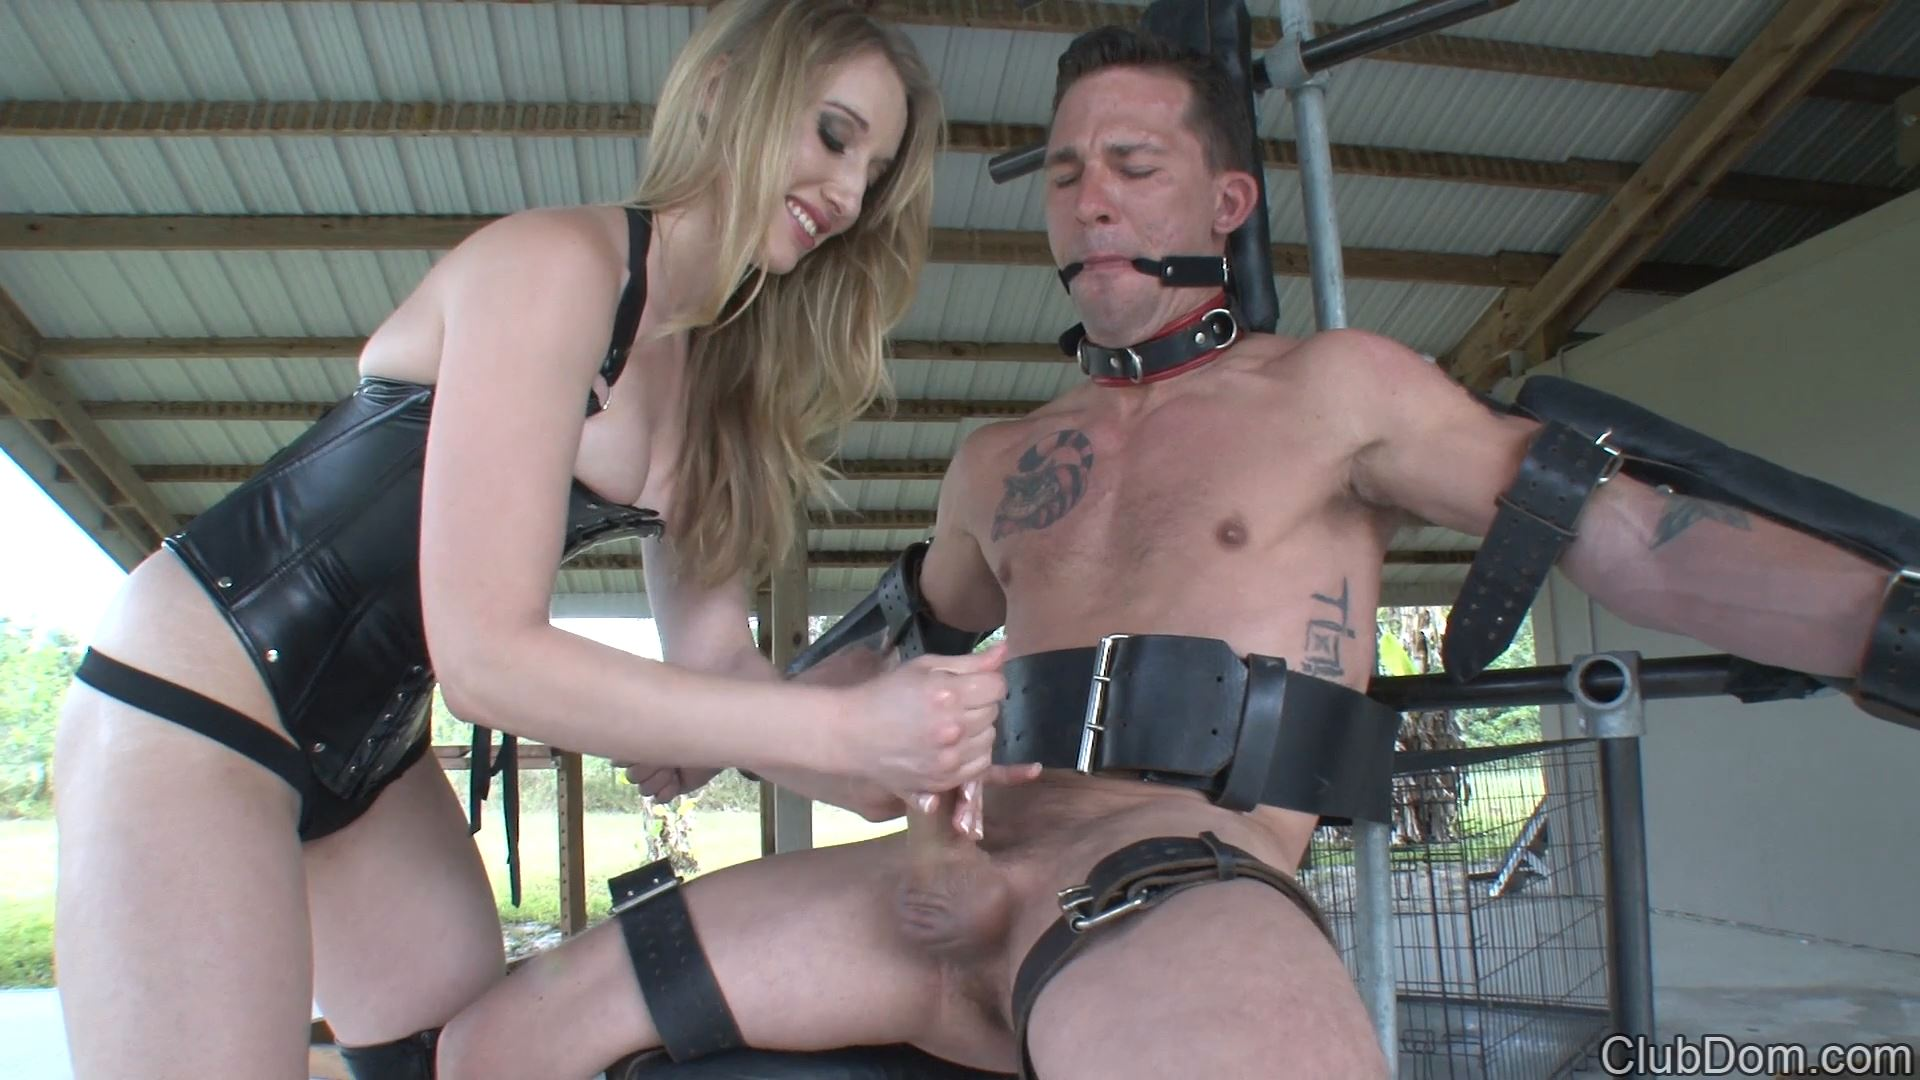 Riley Reynolds In Scene: Extract The Cum - CLUBDOM / RUTHLESSVIXEN - FULL HD/1080p/MP4